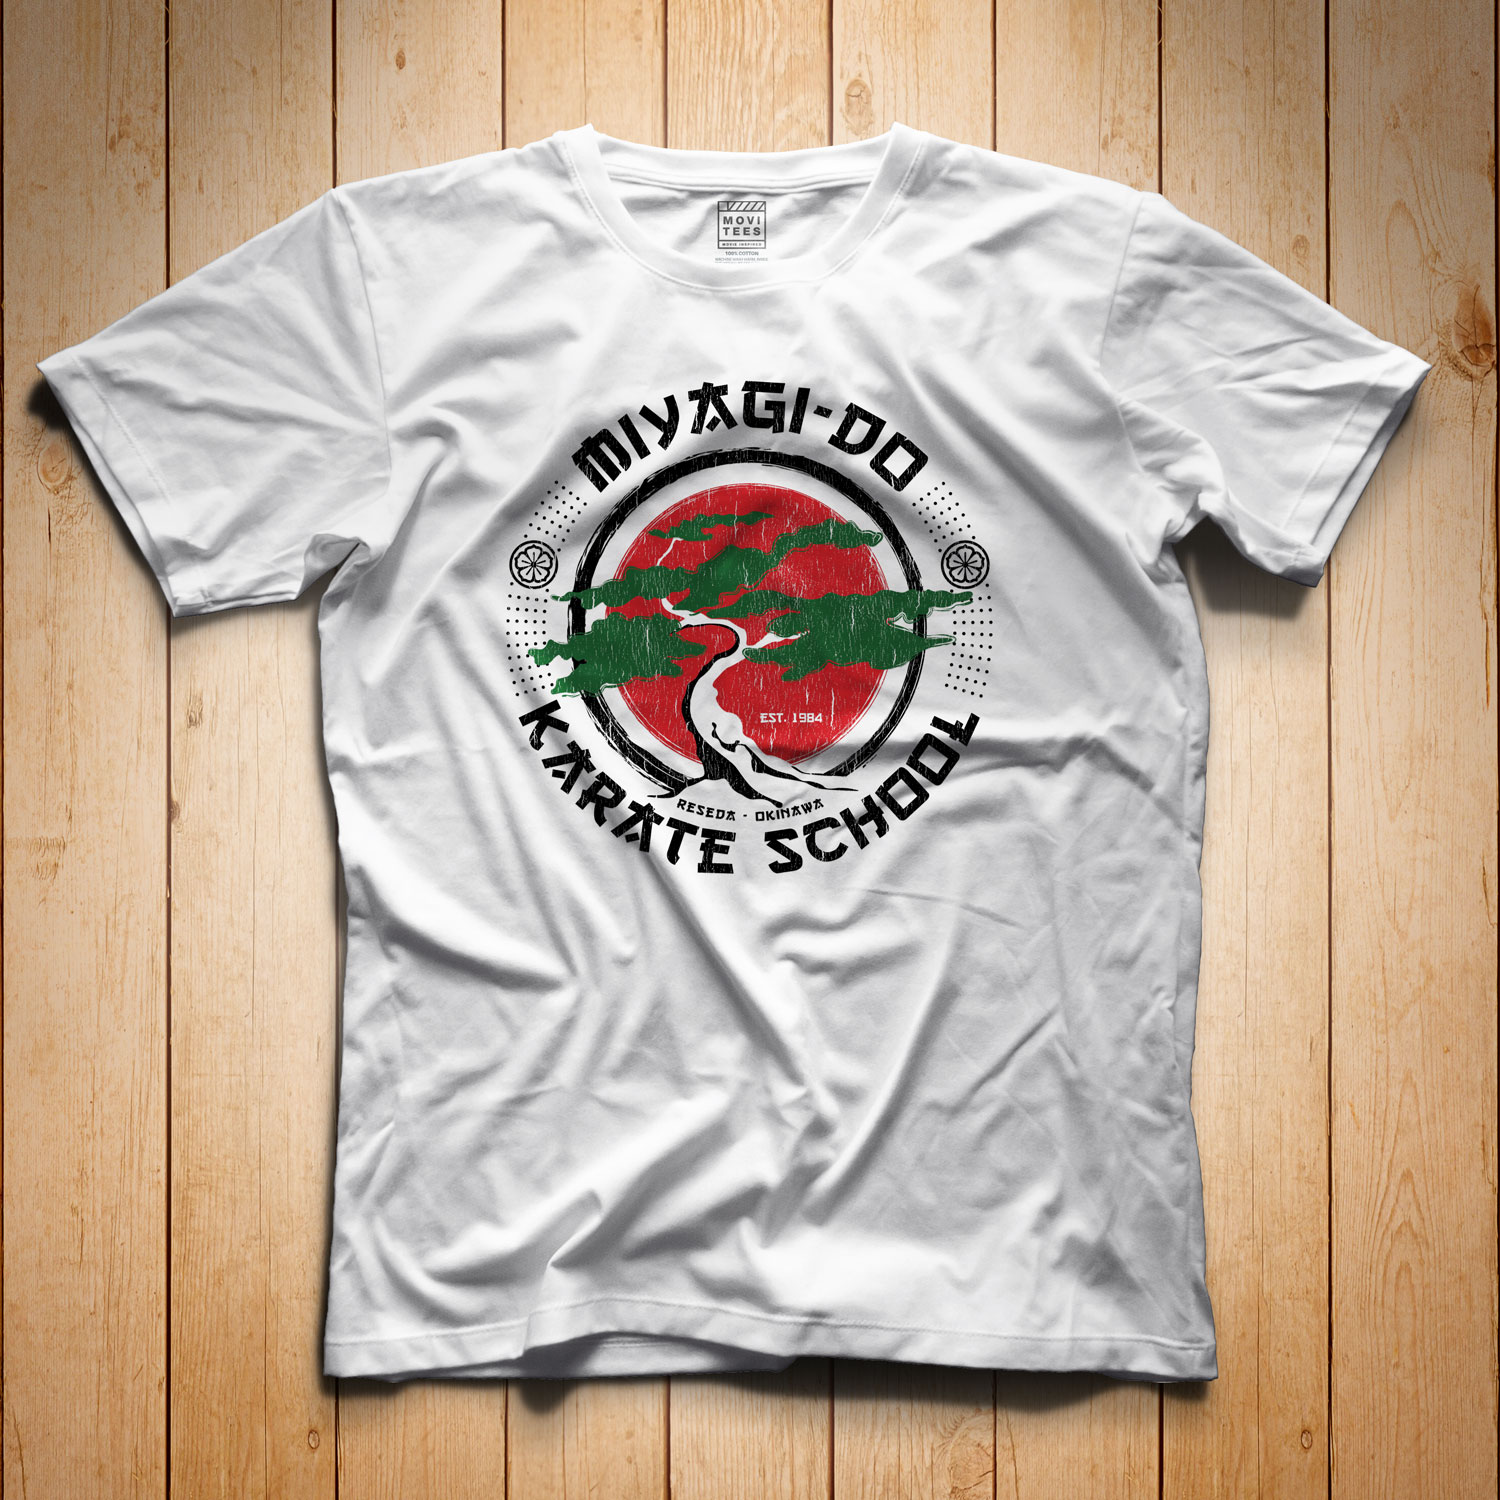 Miyagi-Do-The-Karate-Kid-Inspired-TShirt-by-MoviTees_W.jpg